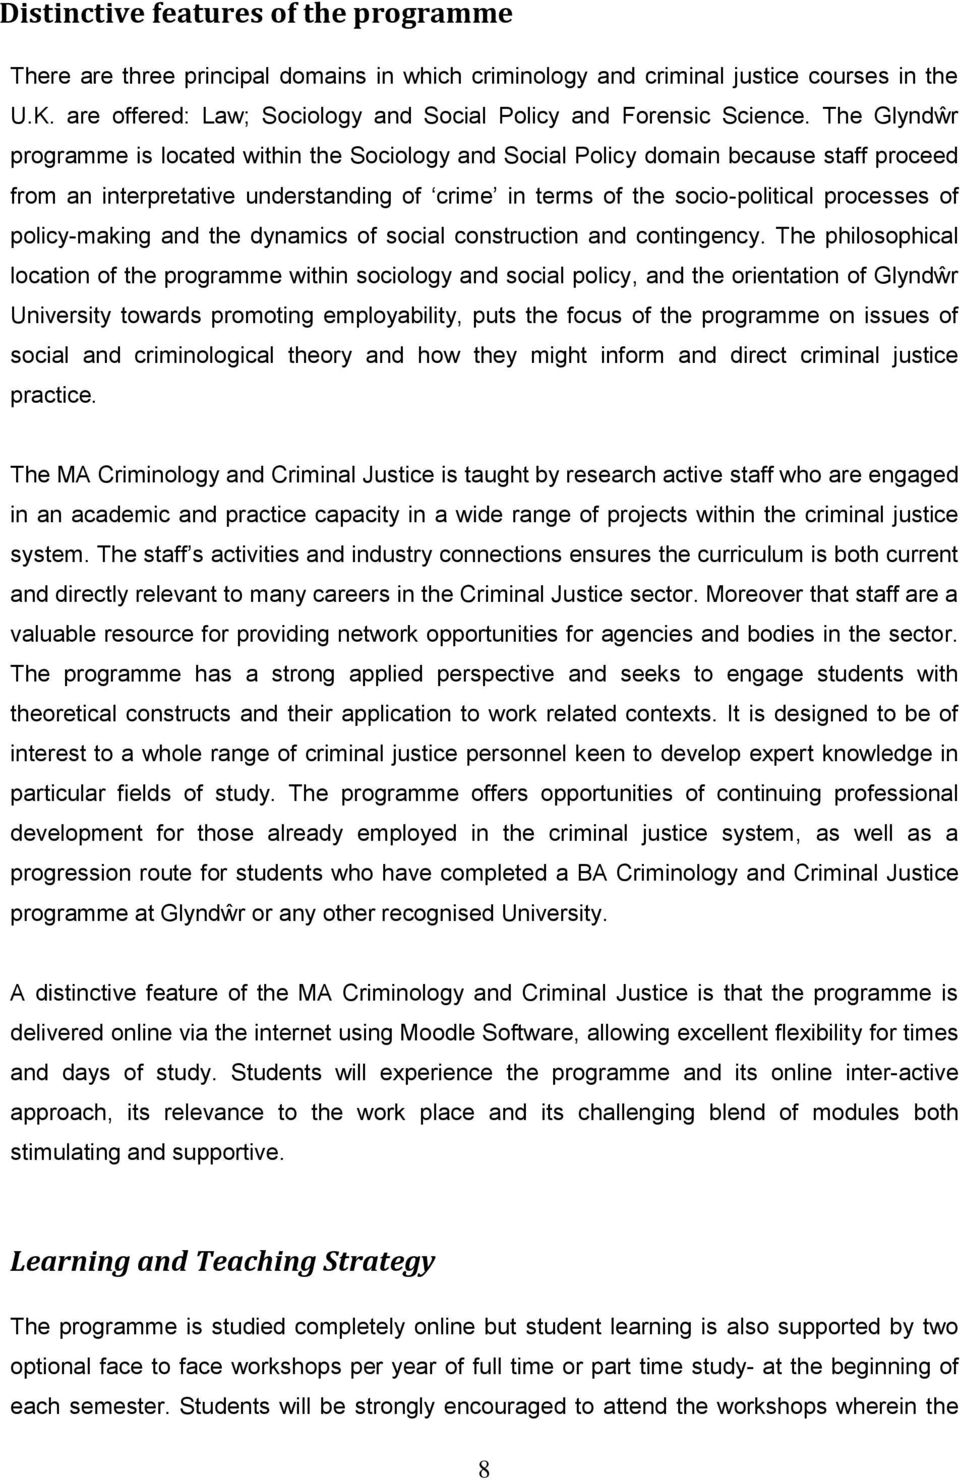 The Glyndŵr programme is located within the Sociology and Social Policy domain because staff proceed from an interpretative understanding of crime in terms of the socio-political processes of